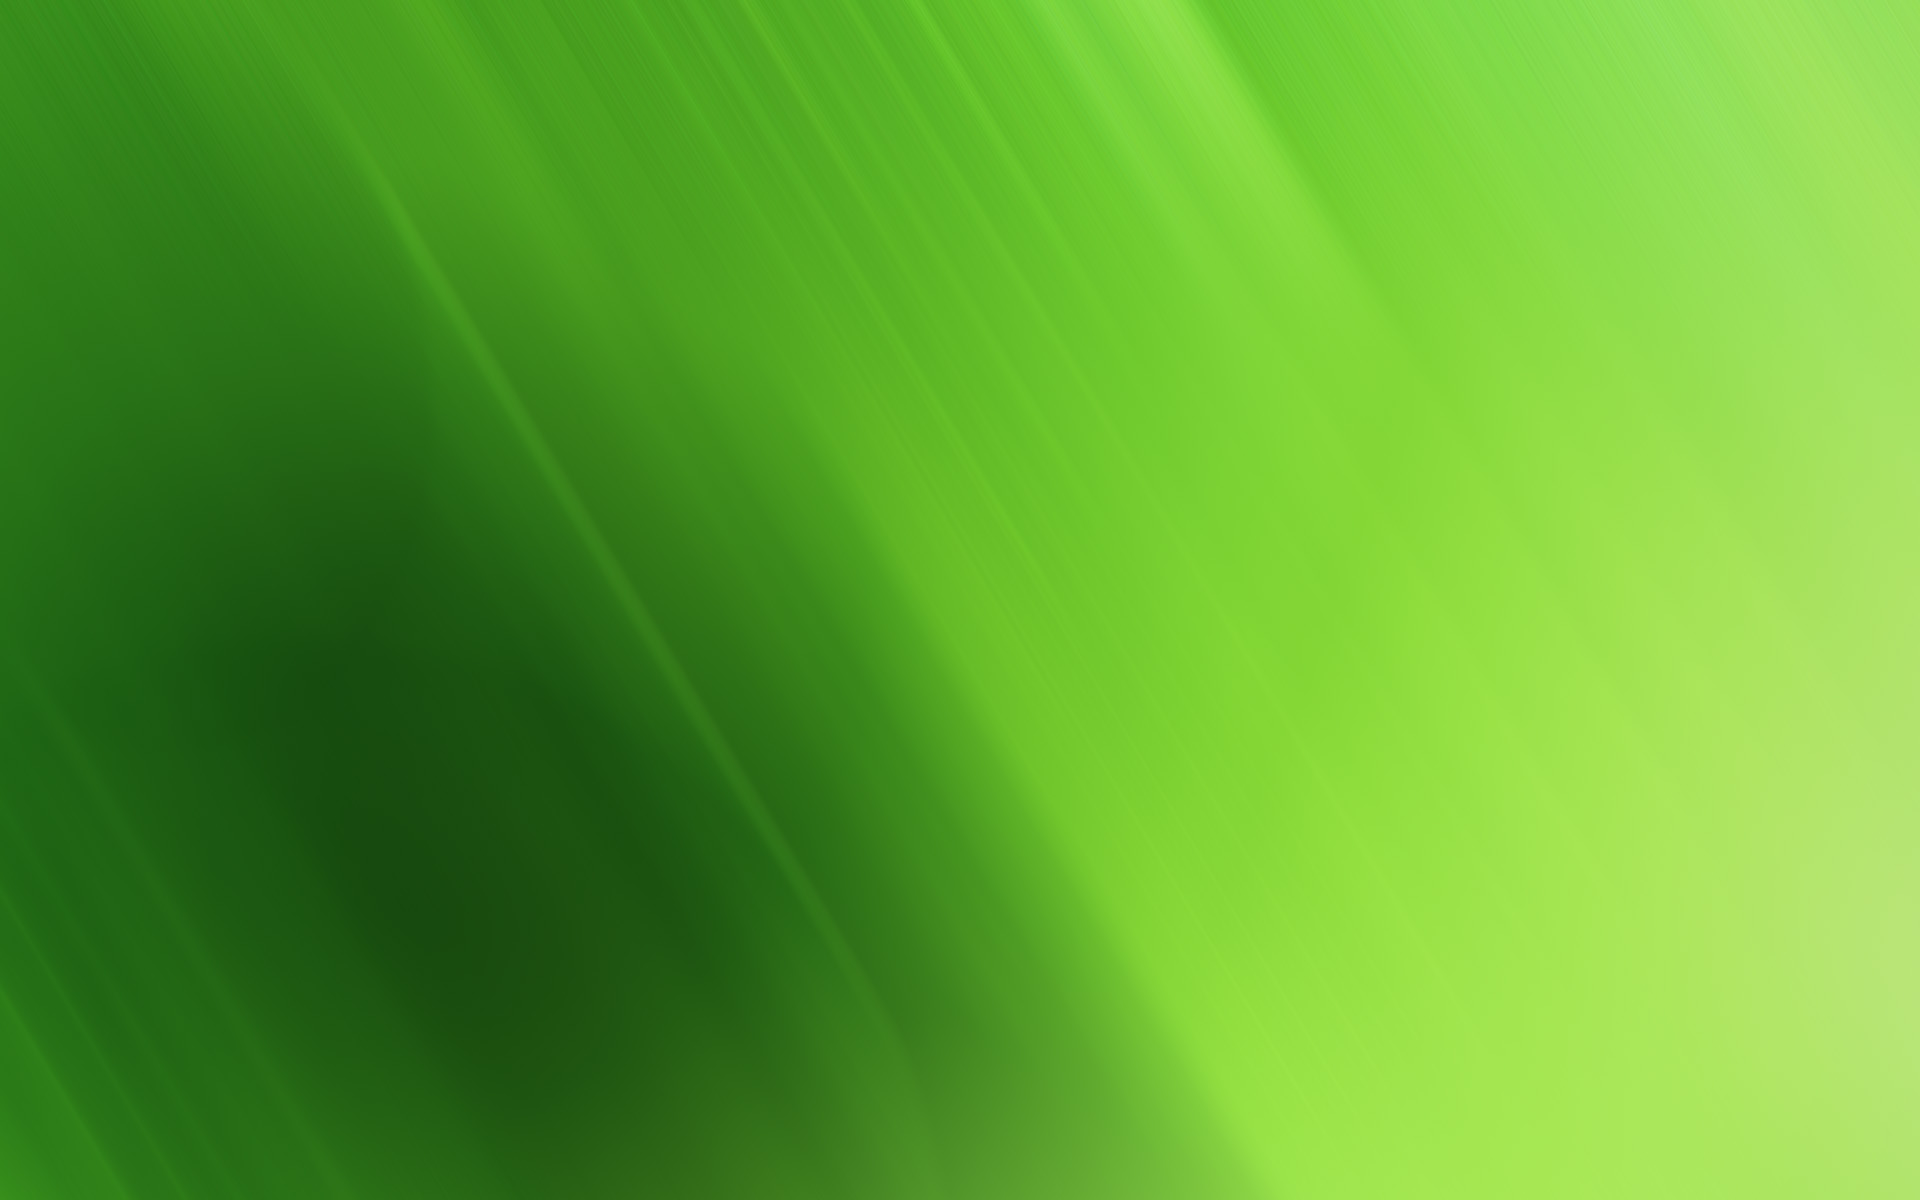 1920x1200 Green abstract desktop wallpapers and stock photos